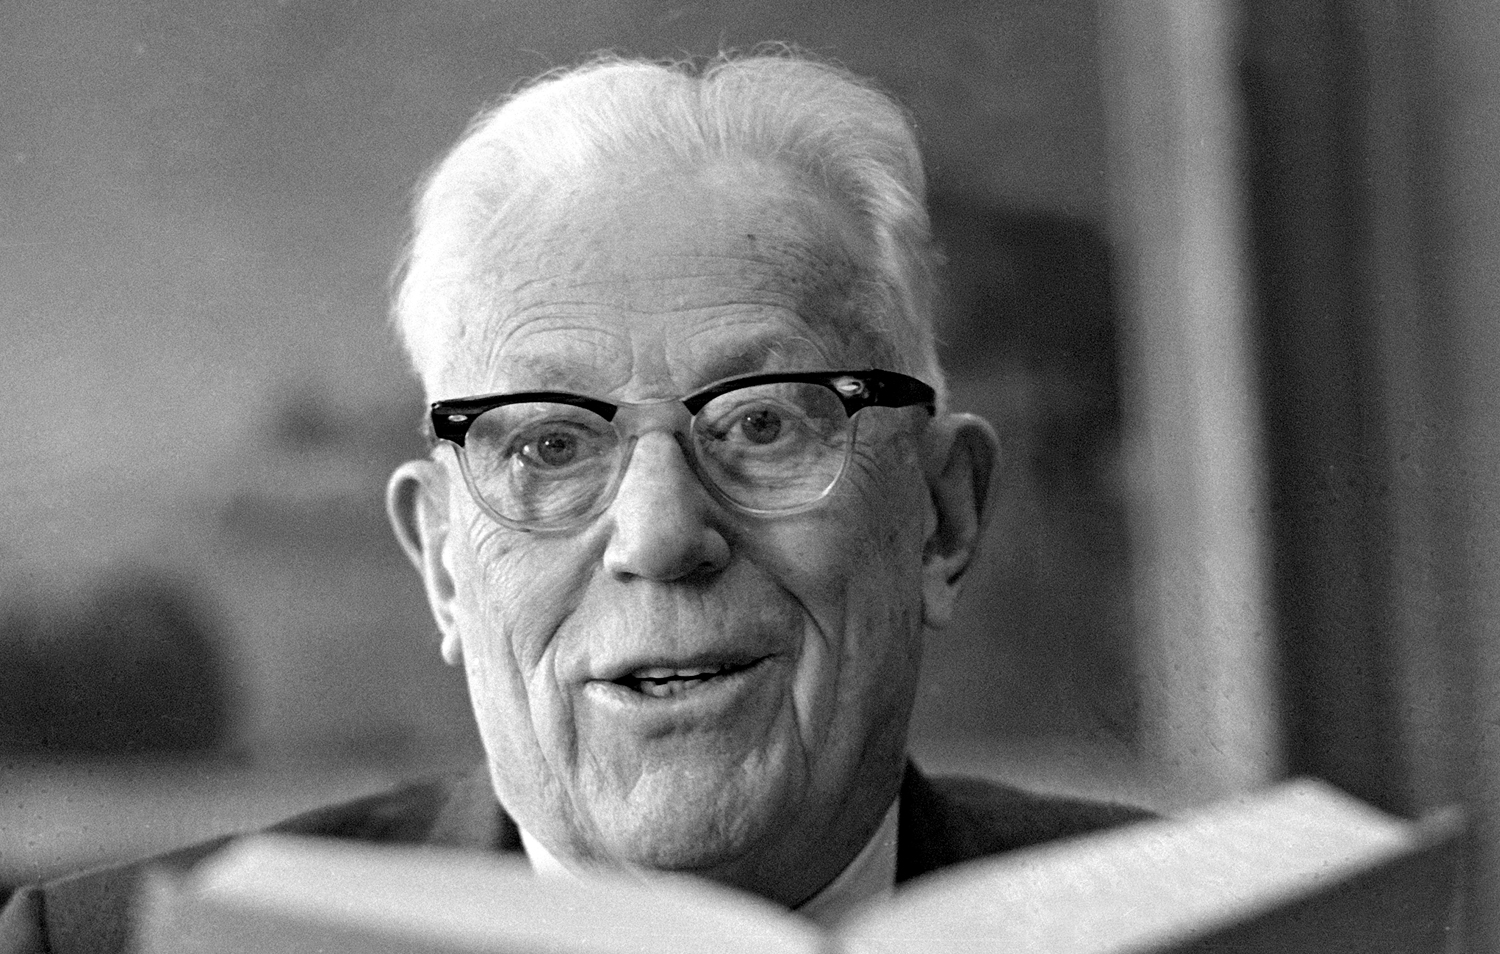 Former-Chief-Justice-Earl-Warren-on-the-eve-of-his-eightieth-birthday-in-1971